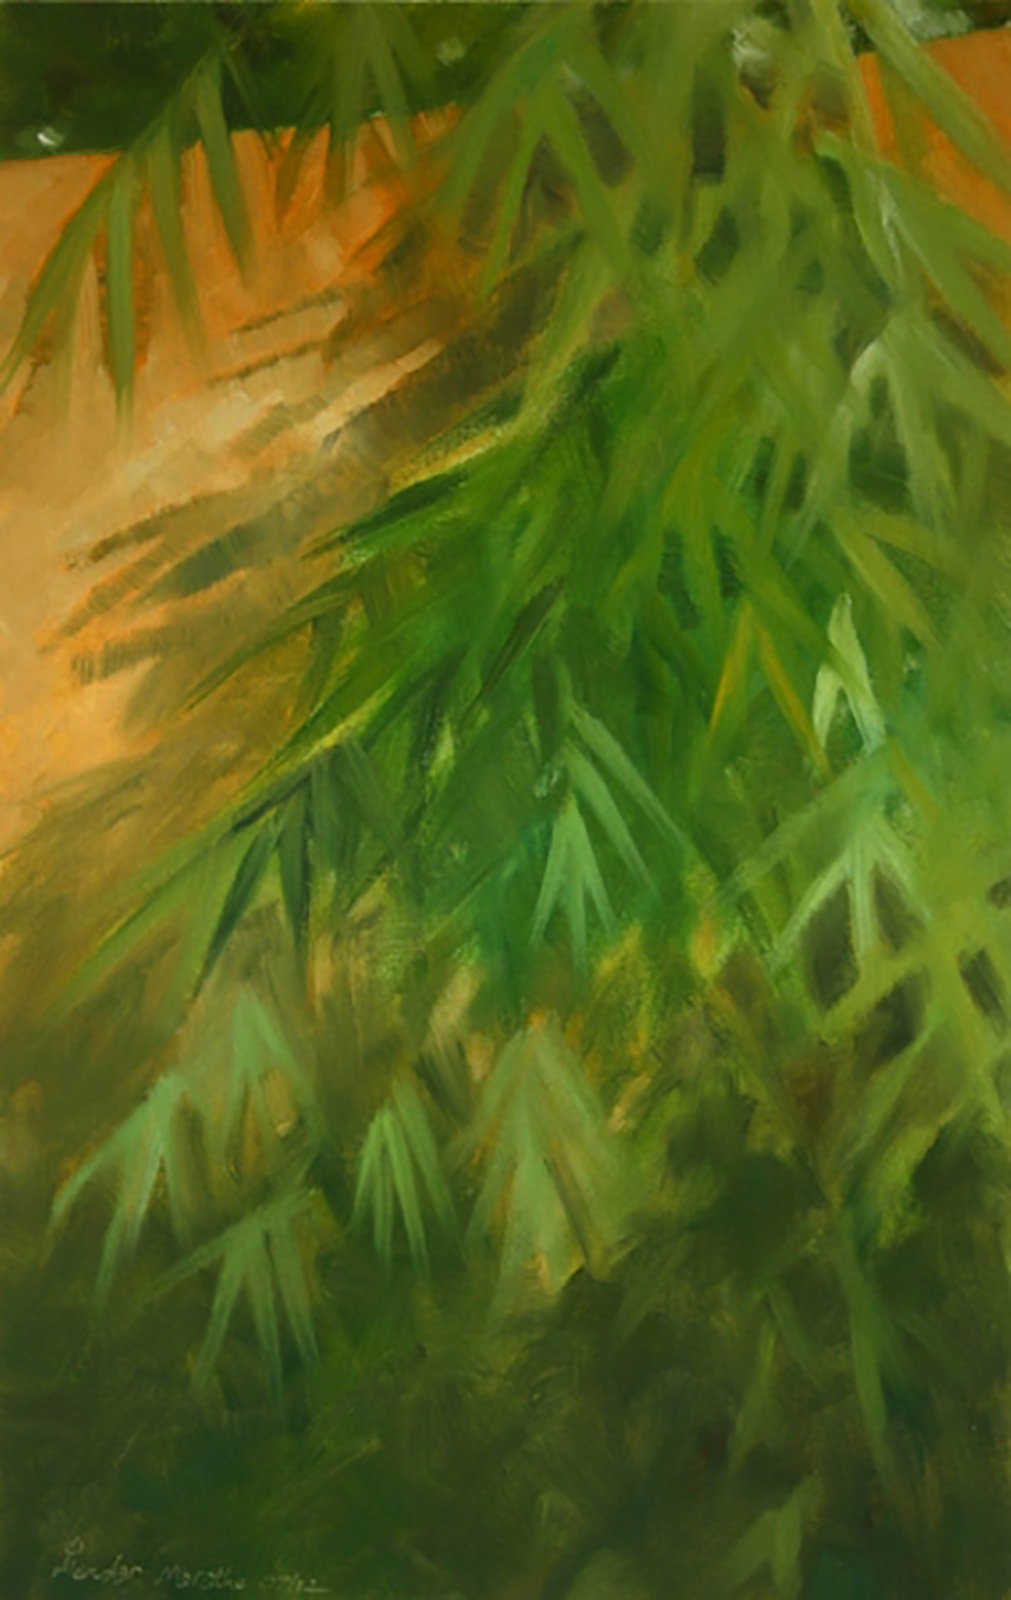 Oil painting showing a zen bamboo tree growing next to a wall.